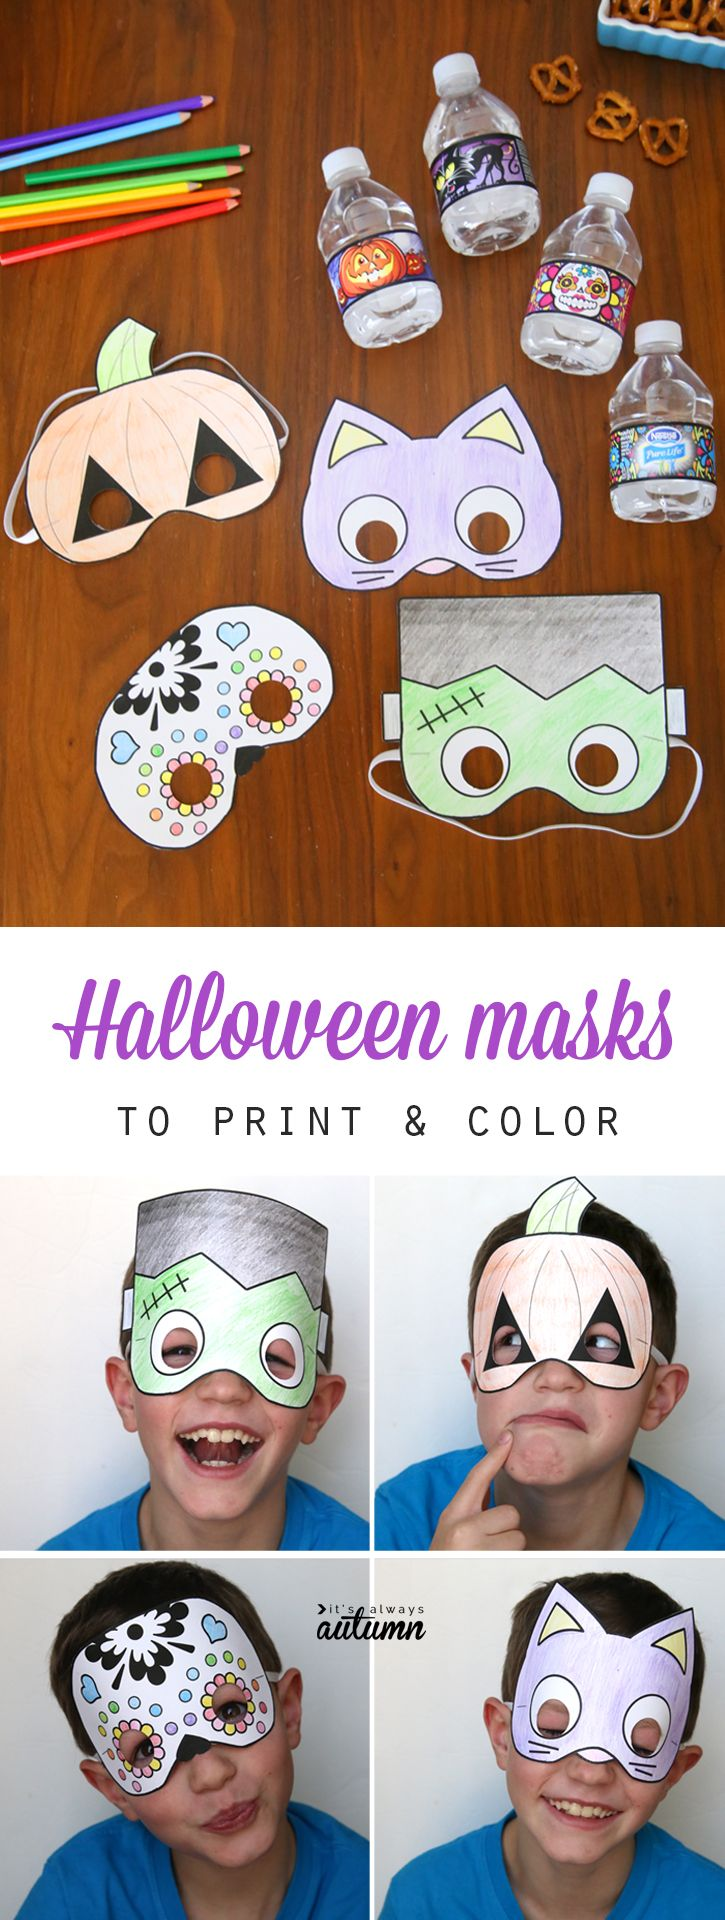 Looking For Easy And Inexpensive Halloween Activities To Do With Your Kids Surprise Them